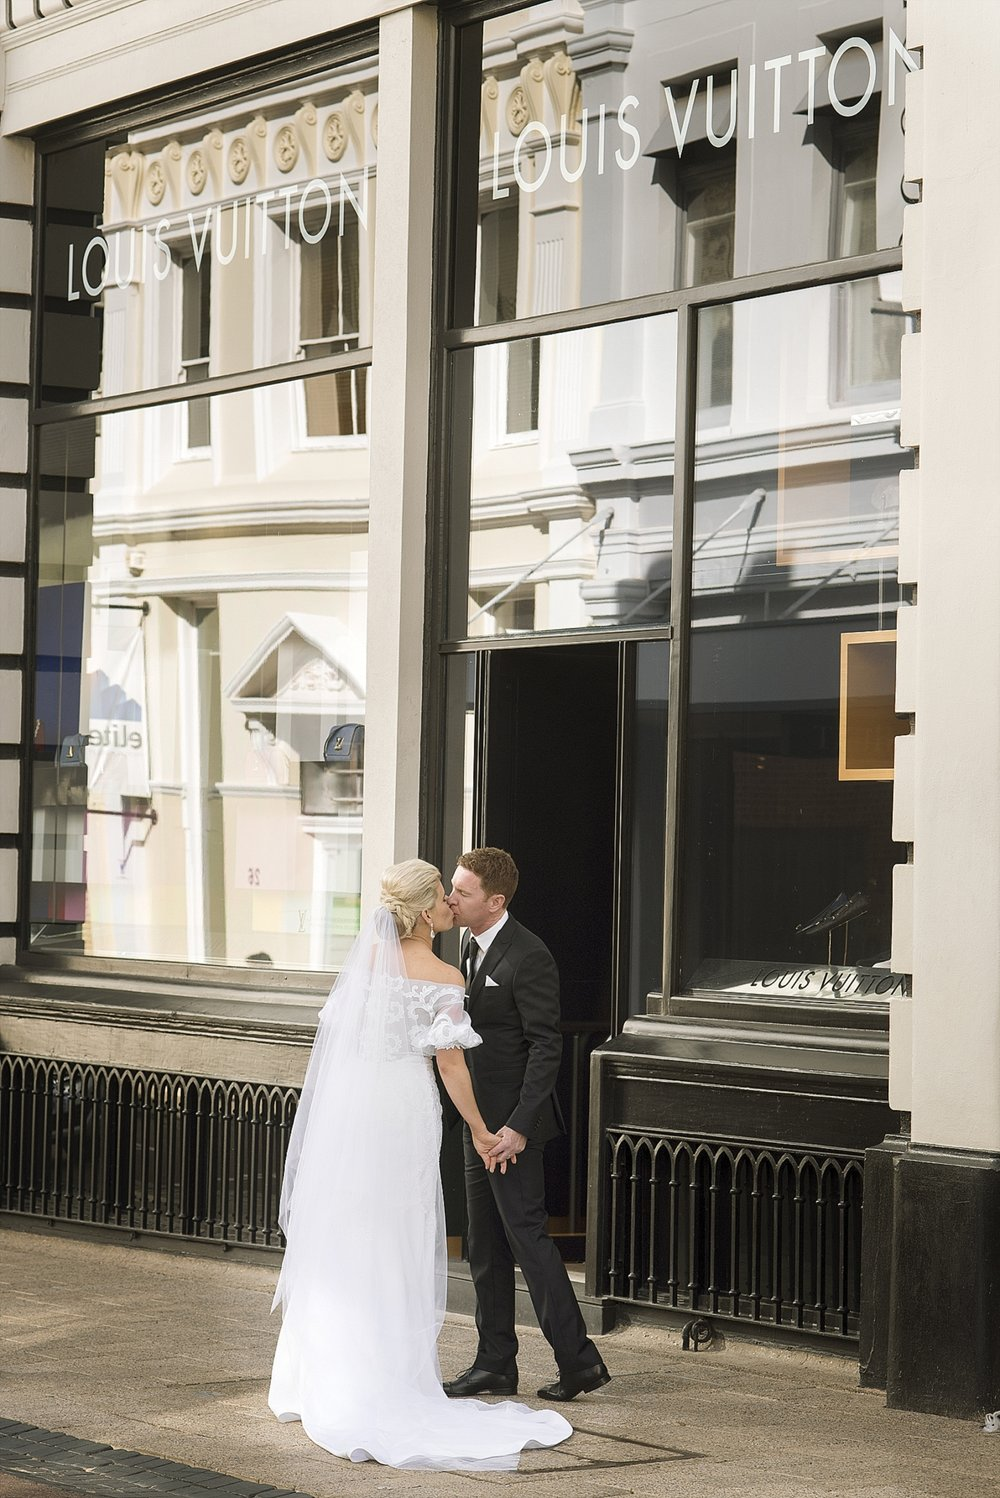 36wedding photos on king st perth44.jpg